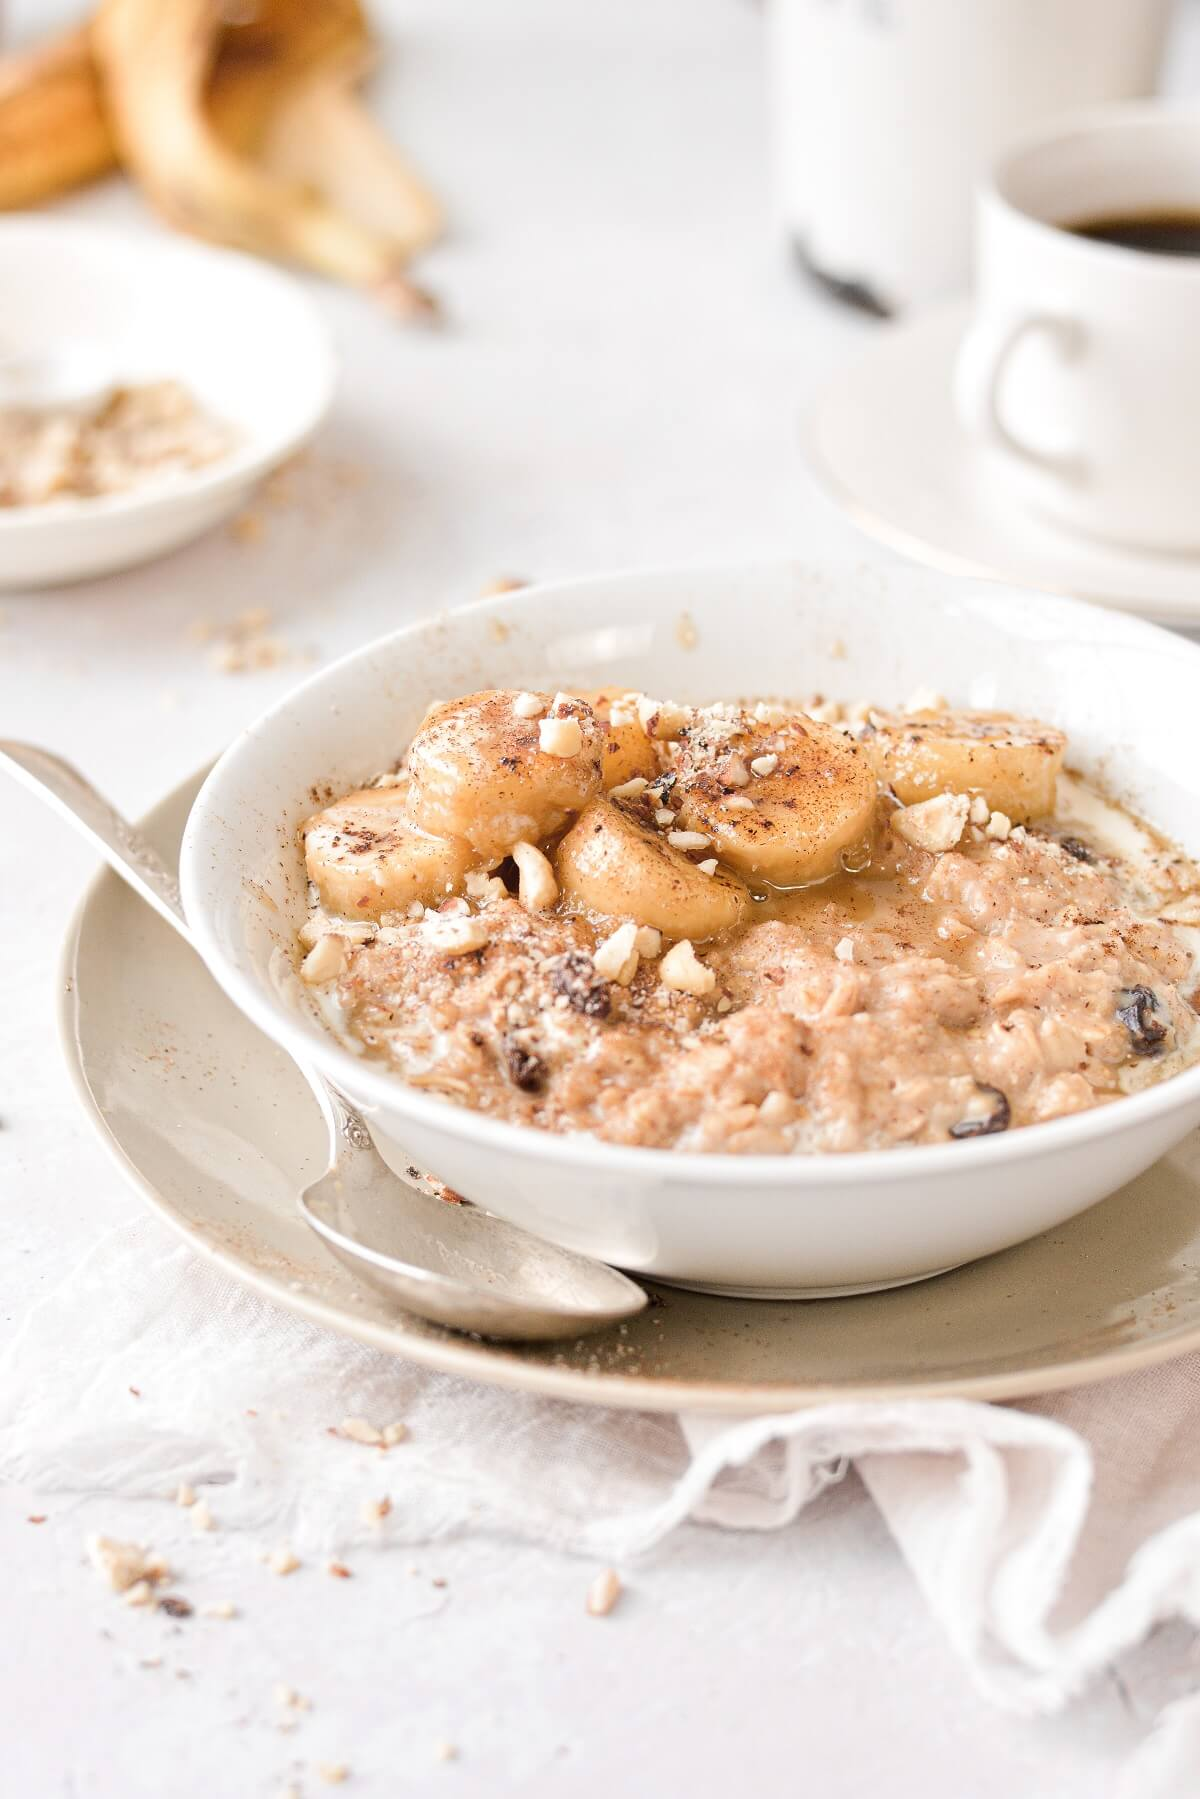 A bowl of oatmeal topped with caramelized bourbon bananas and chopped hazelnuts.